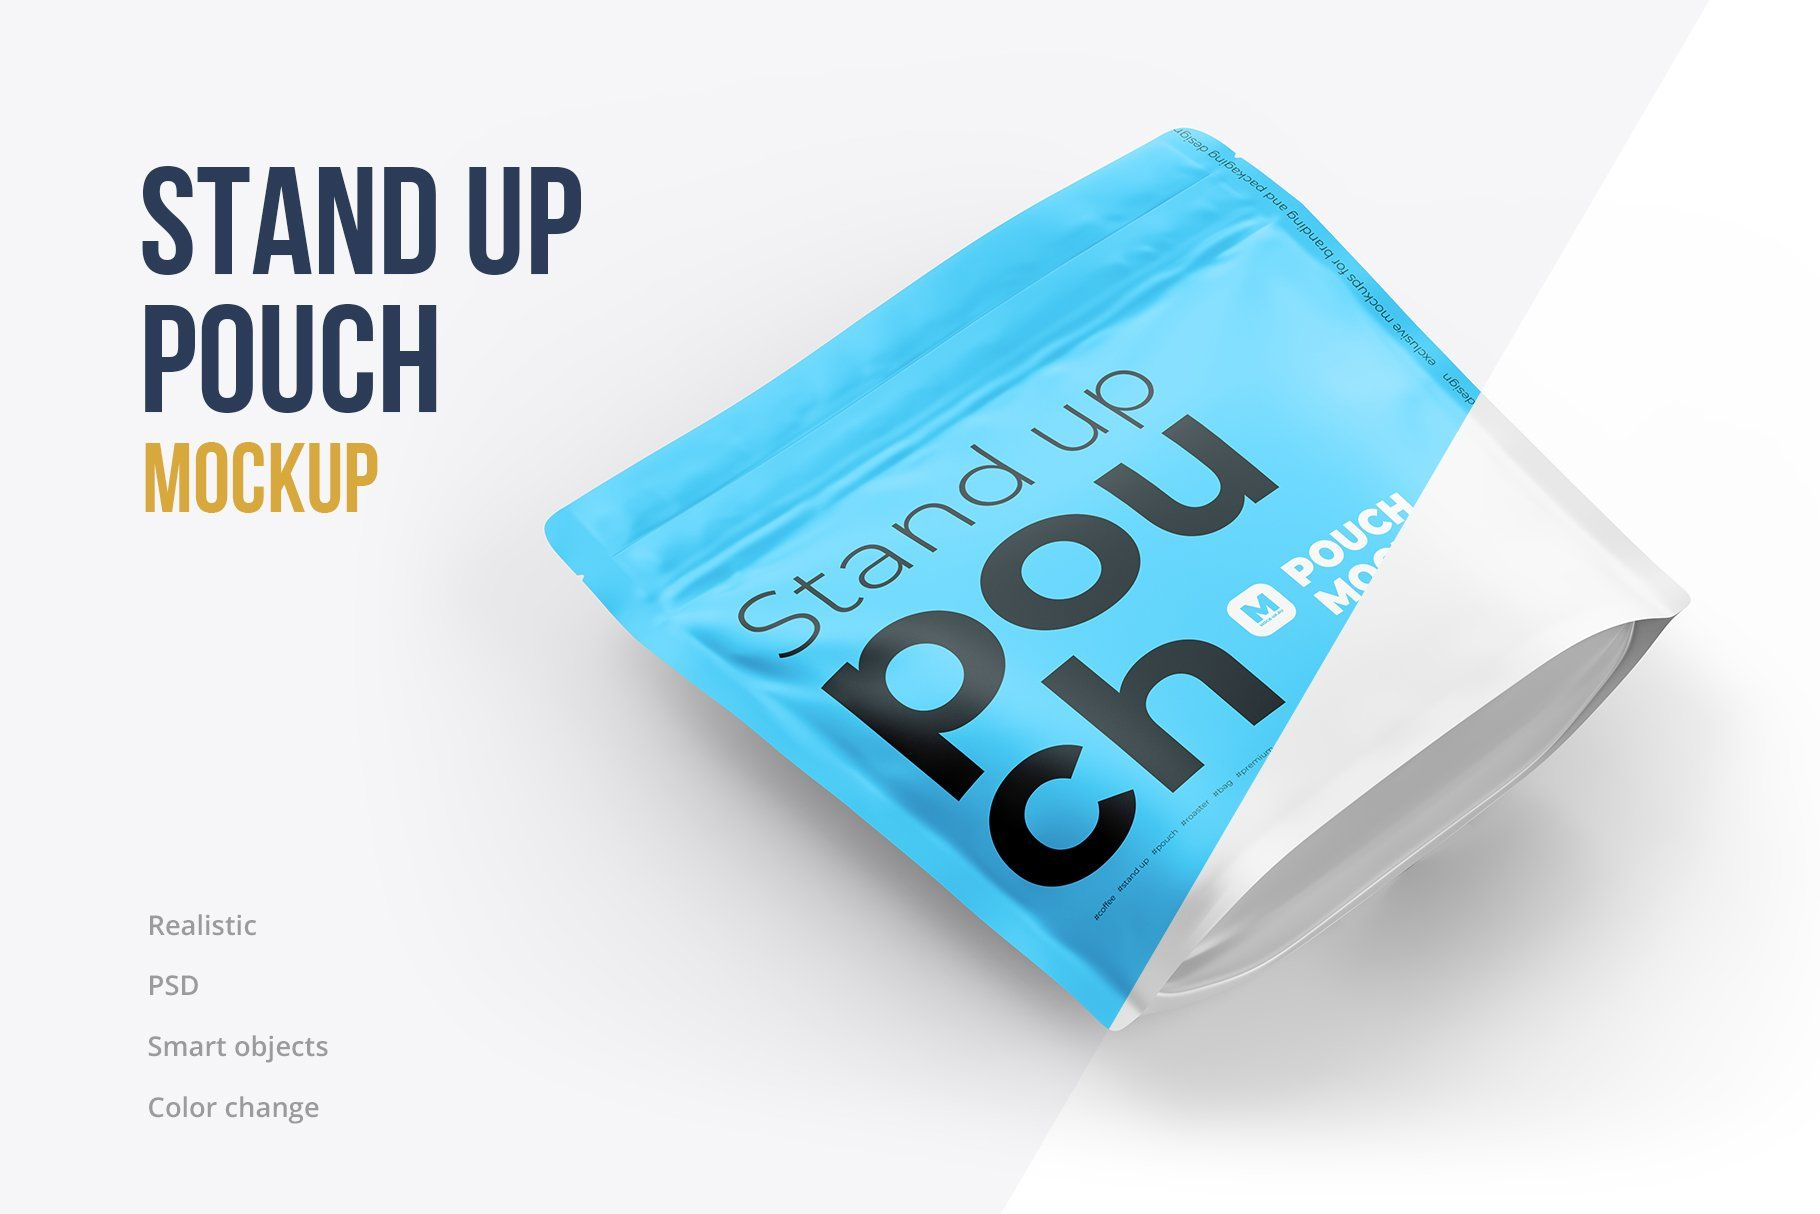 Download Stand Up Pouch Mockup Square By Mock Up Ru On Creativemarket Mockup Mockup Design Stand Up